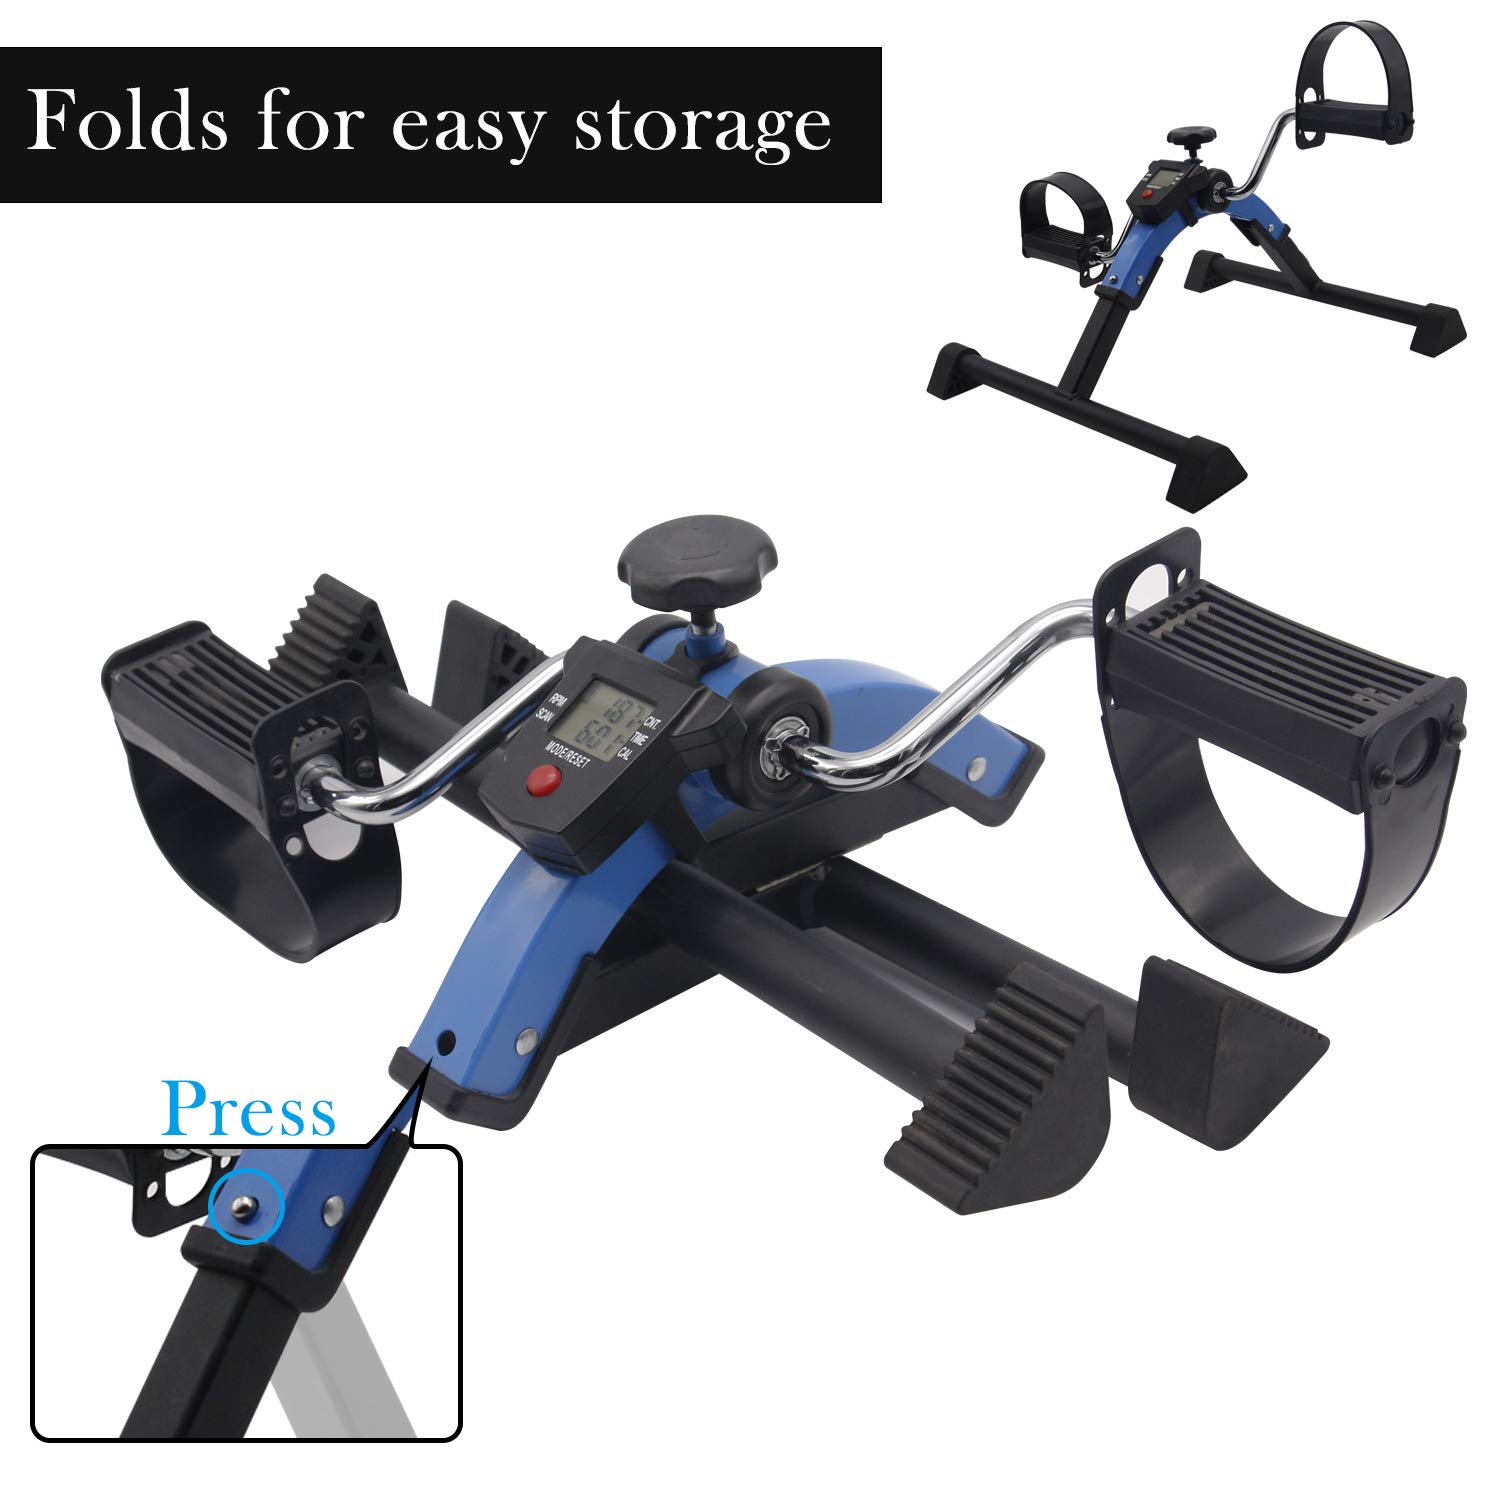 Friday discount Stationary Exercise Bike Indoor Under Desk Pedal Exerciser with LCD Monitor and Adjustable Resistance Fitness Foot Bike Blue